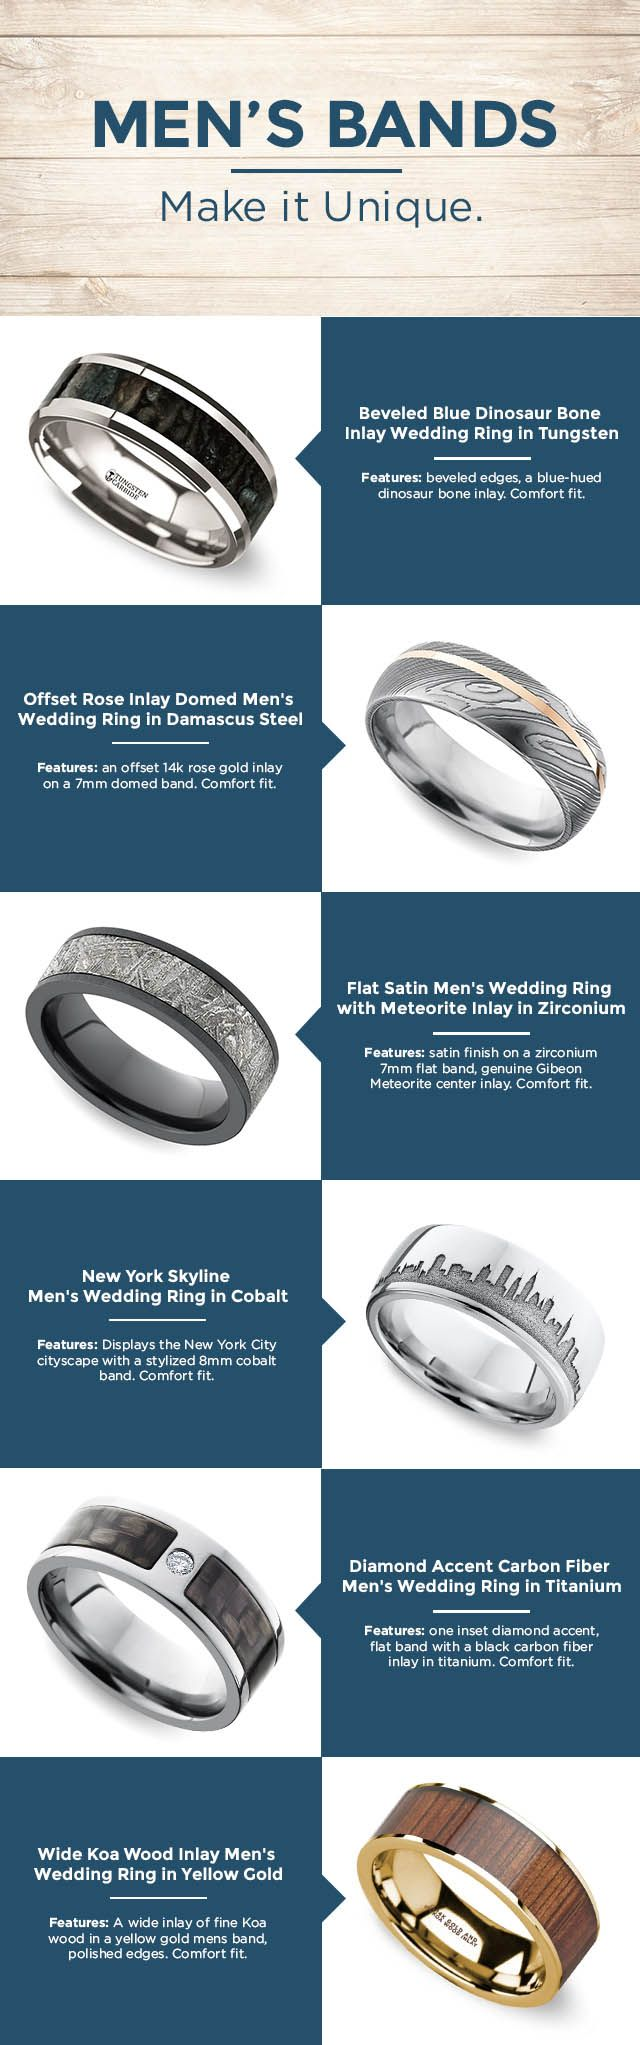 men wedding bands mens christian wedding bands 25 Best Ideas about Men Wedding Bands on Pinterest Tungsten mens rings Groom ring and Mens wedding rings tungsten